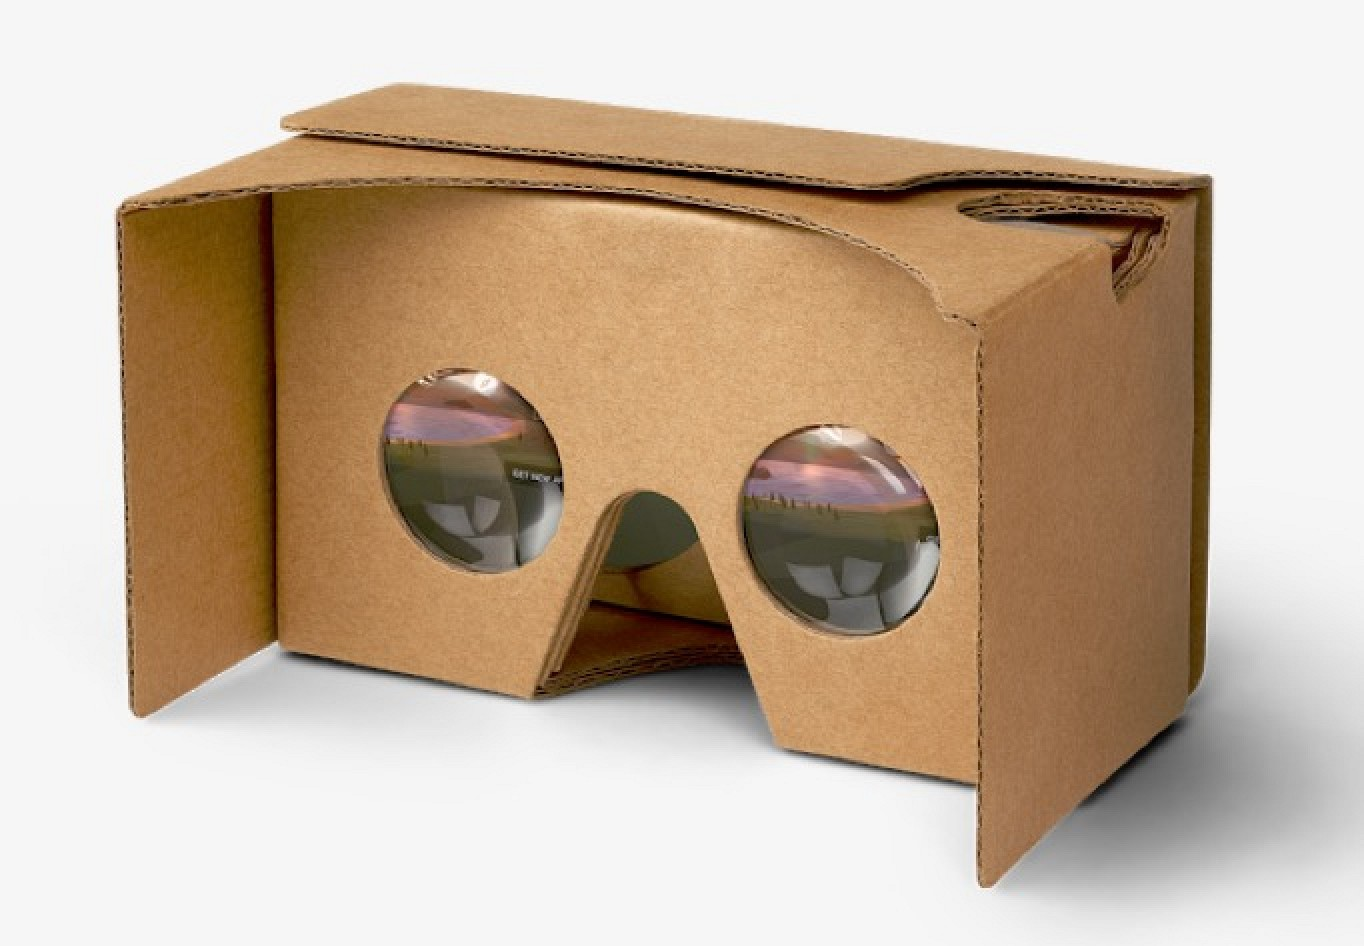 b41e53beb76f Google Officially Rolls Out Cardboard VR Viewer to EU and Canada Stores -  MacRumors